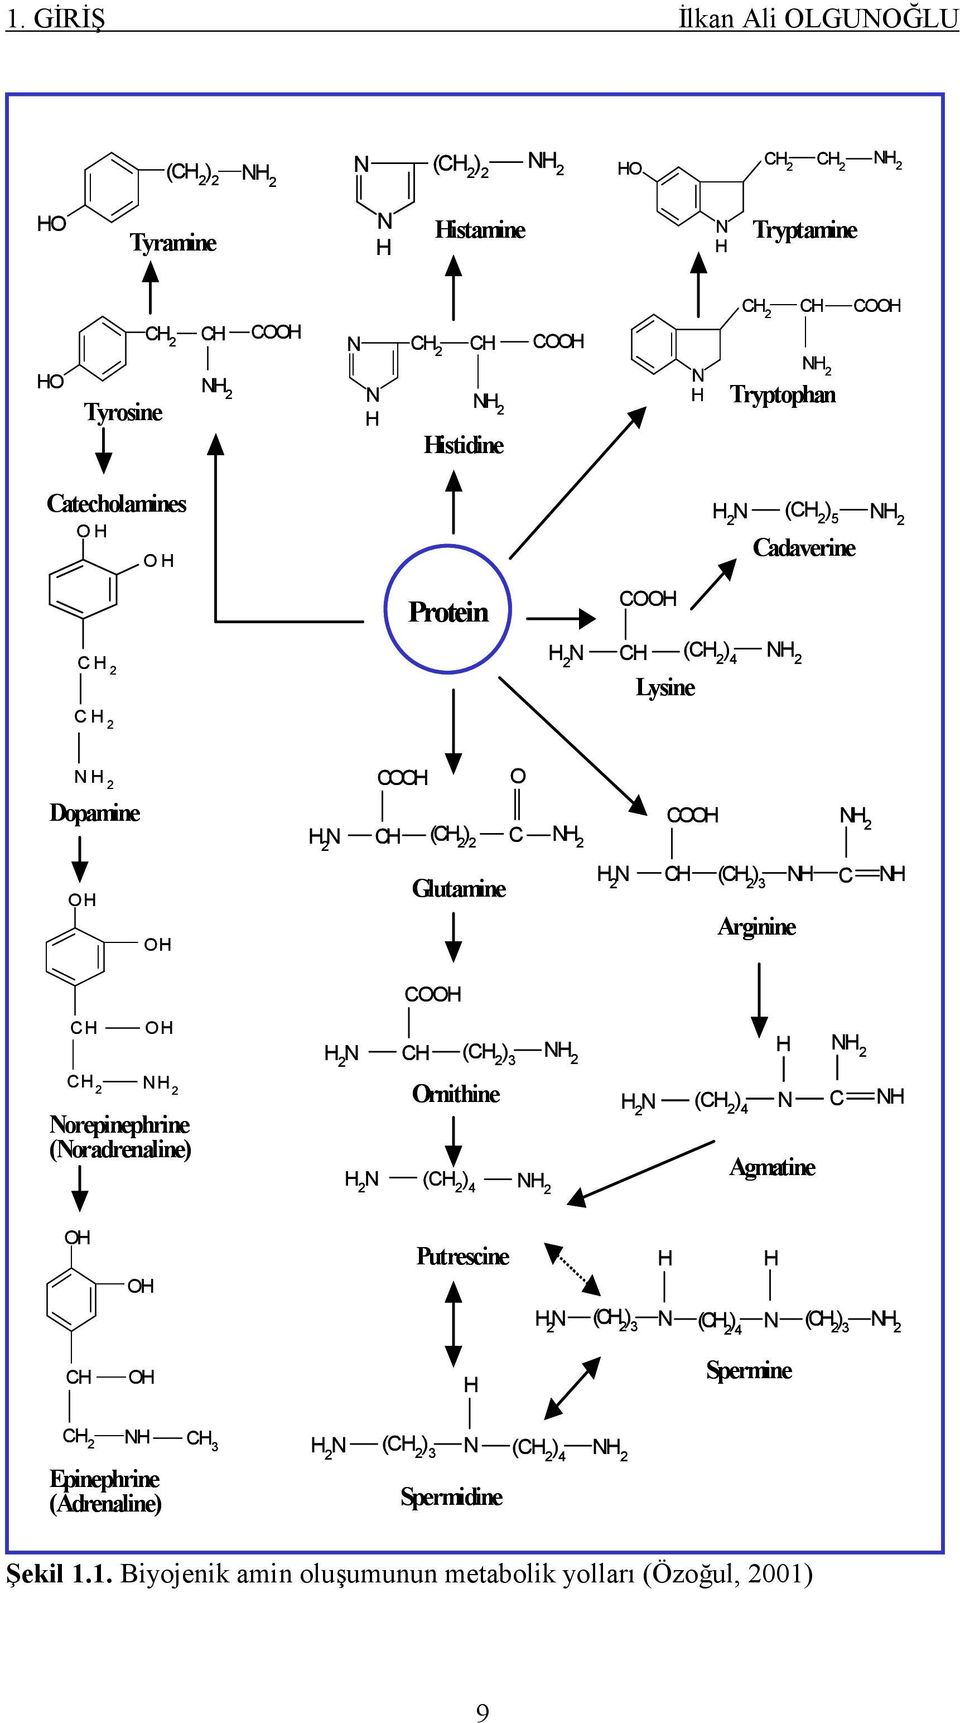 2 N CH (CH 2 ) 3 NH C Arginine NH COOH CH OH H 2 N CH (CH 2 ) 3 NH 2 H NH 2 CH 2 NH 2 Norepinephrine (Noradrenaline) Ornithine H 2 N (CH 2 ) 4 NH 2 H 2 N (CH 2 ) 4 N C Agmatine NH OH OH Putrescine H